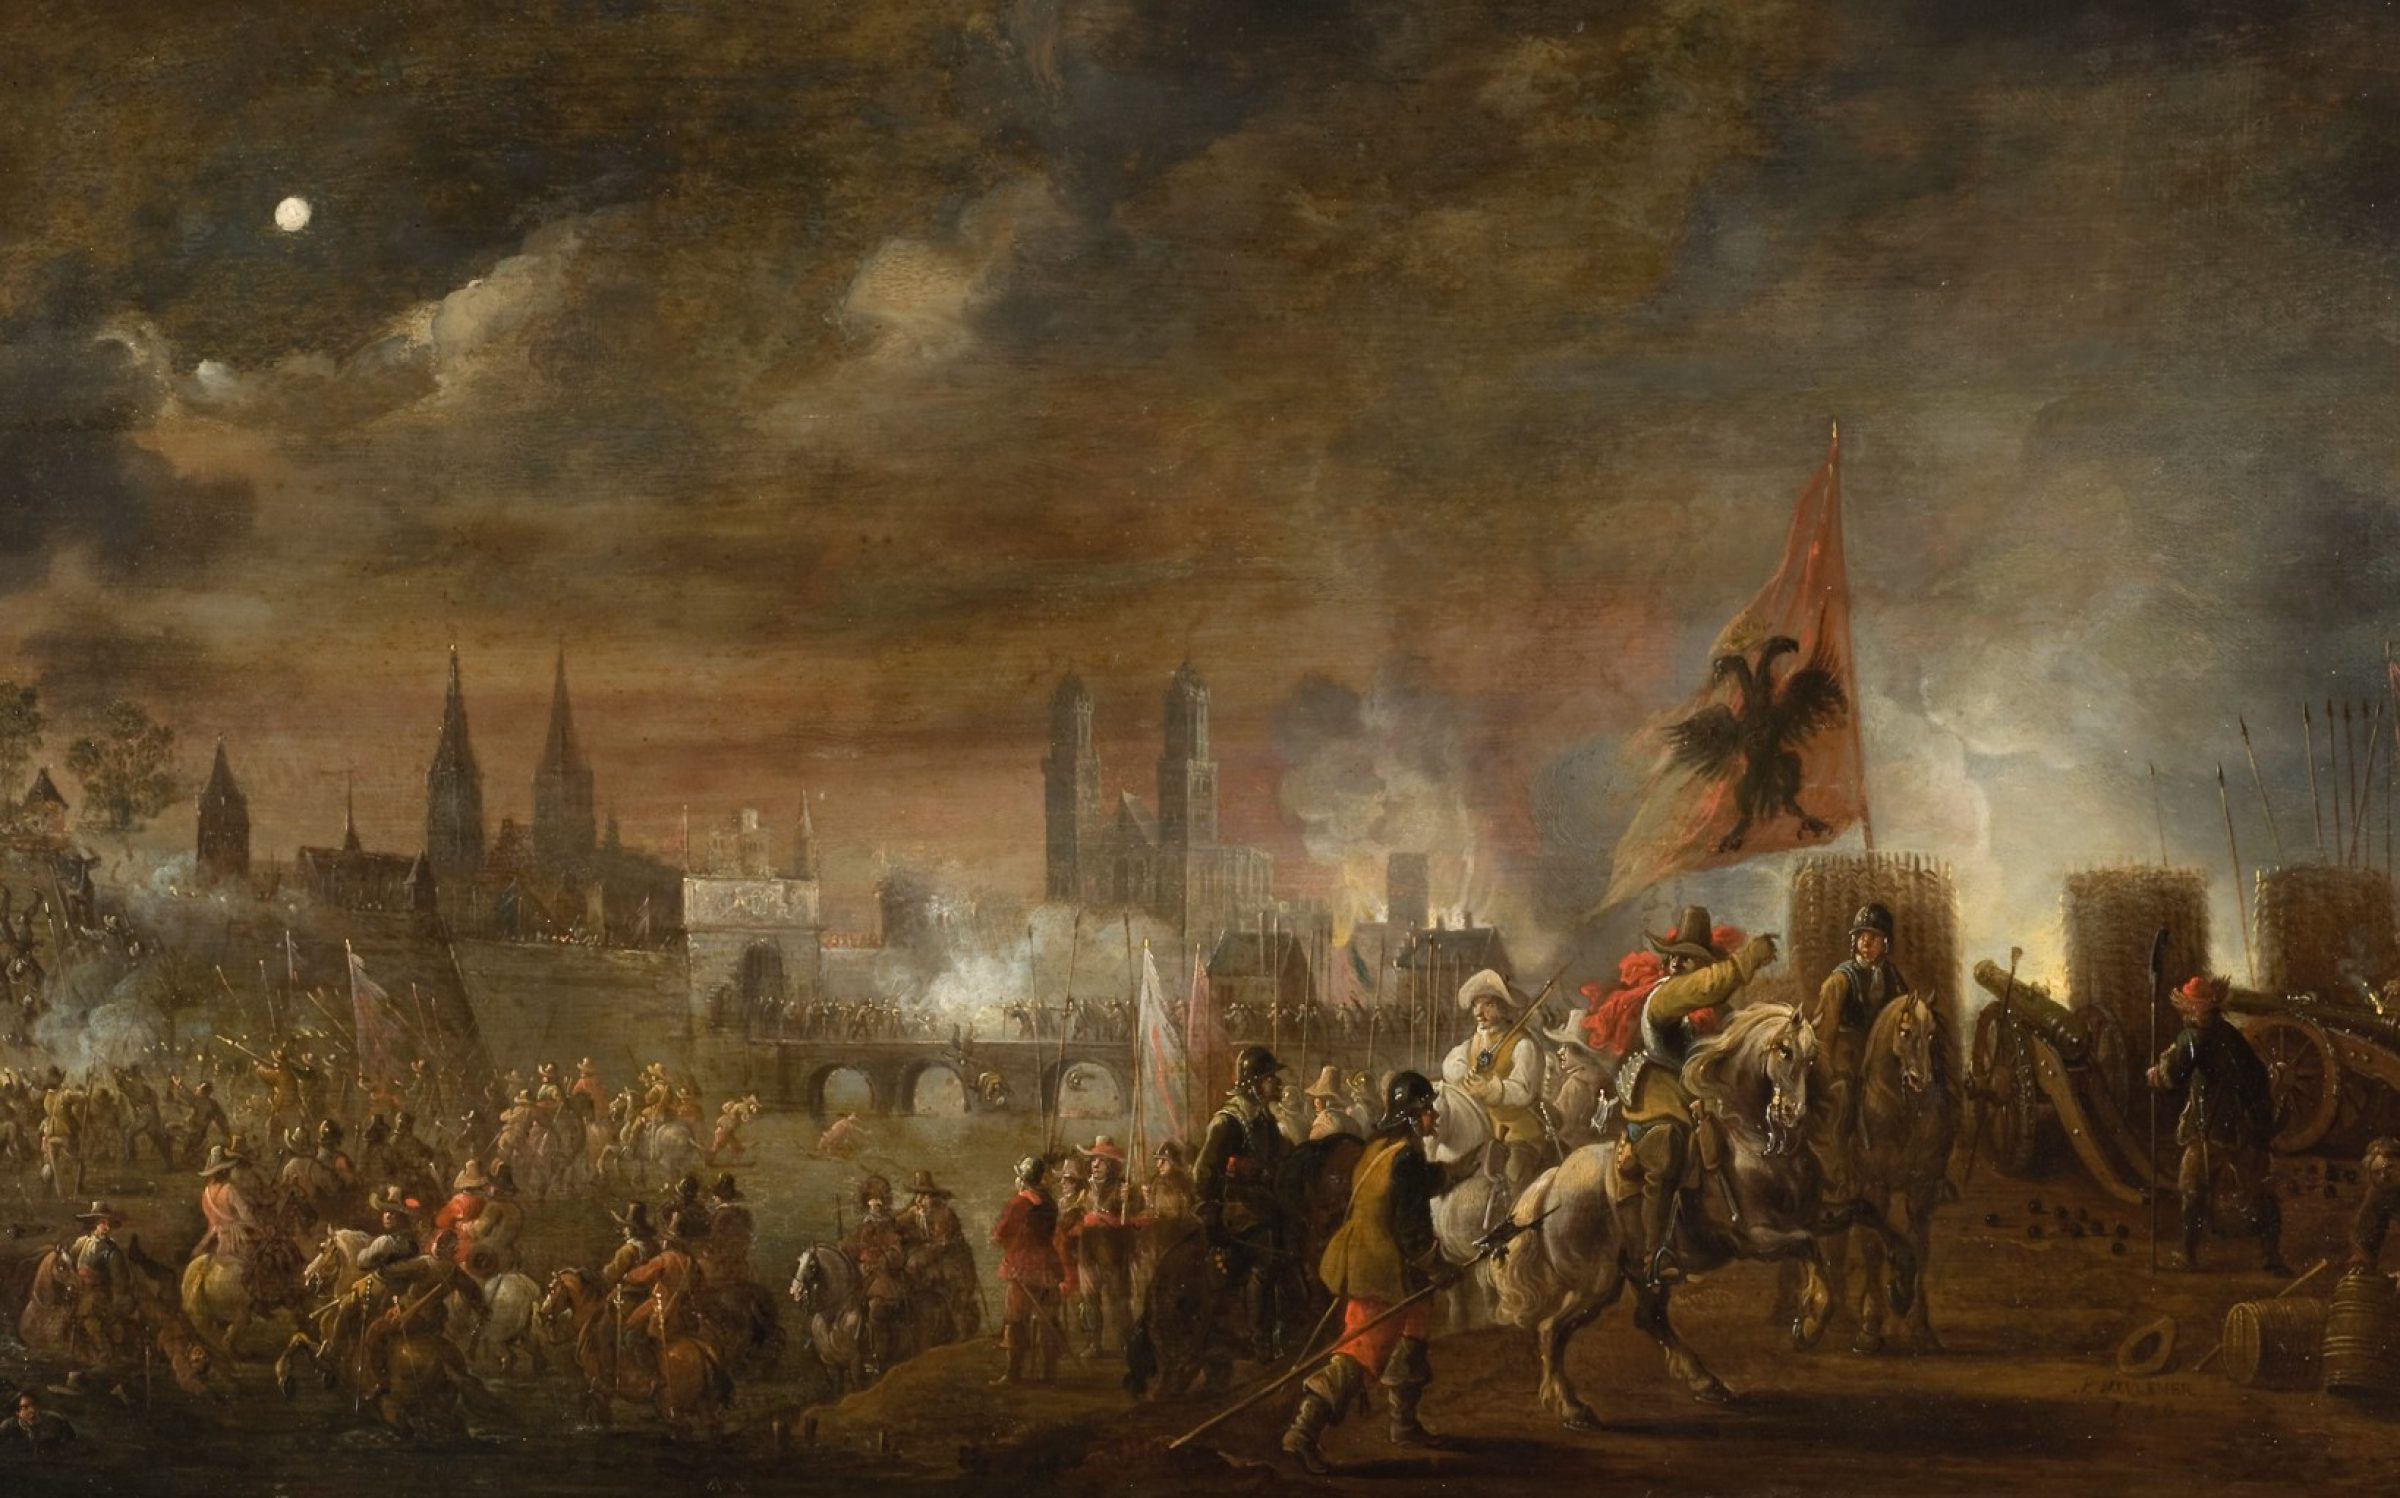 Scene from the Siege of Magdeburg